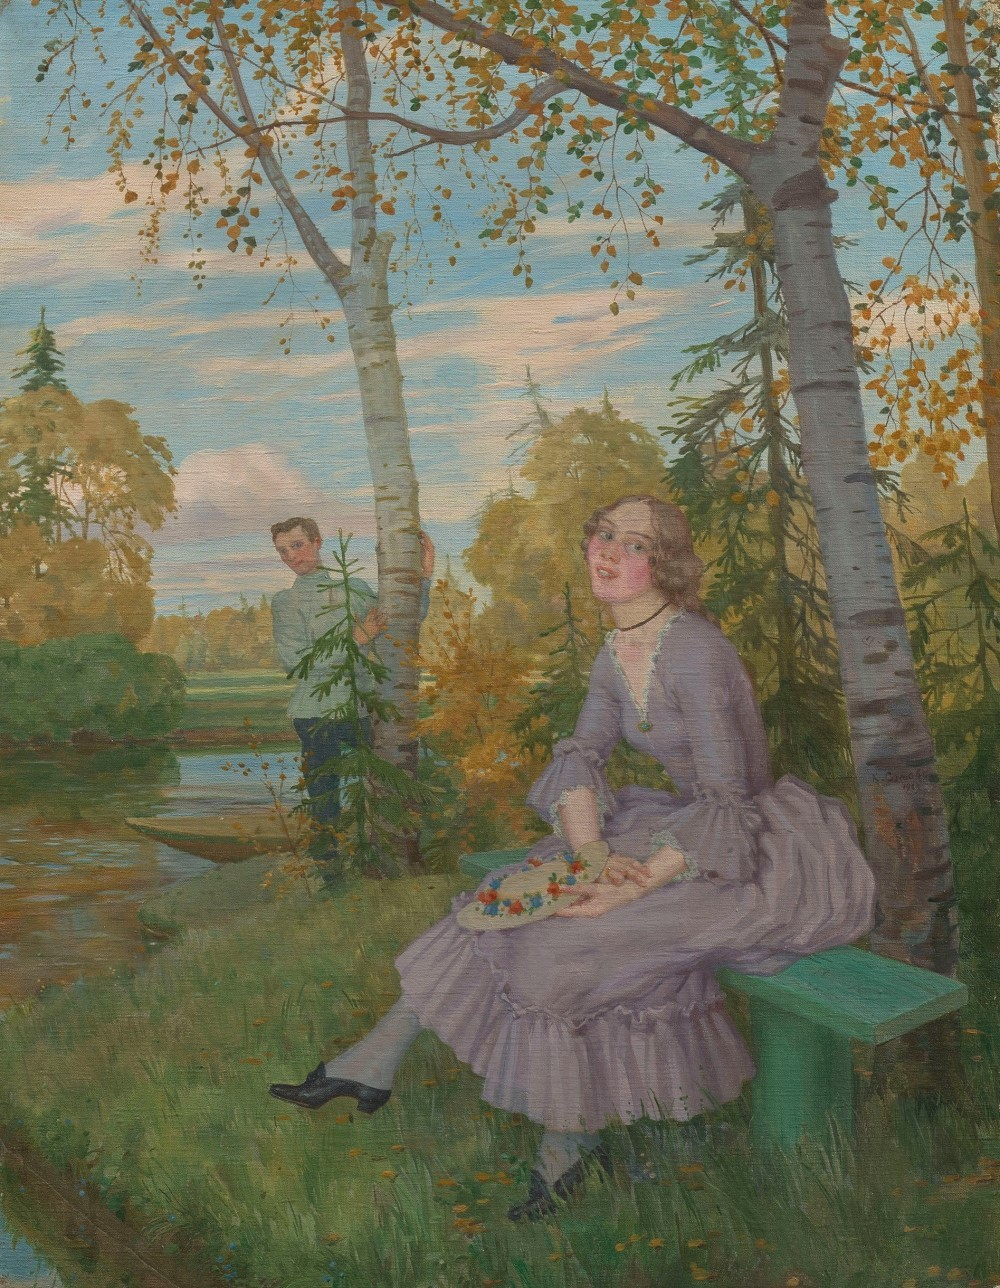 MacDOUGALL's RUSSIAN ART AUCTION 30 MAY 2020